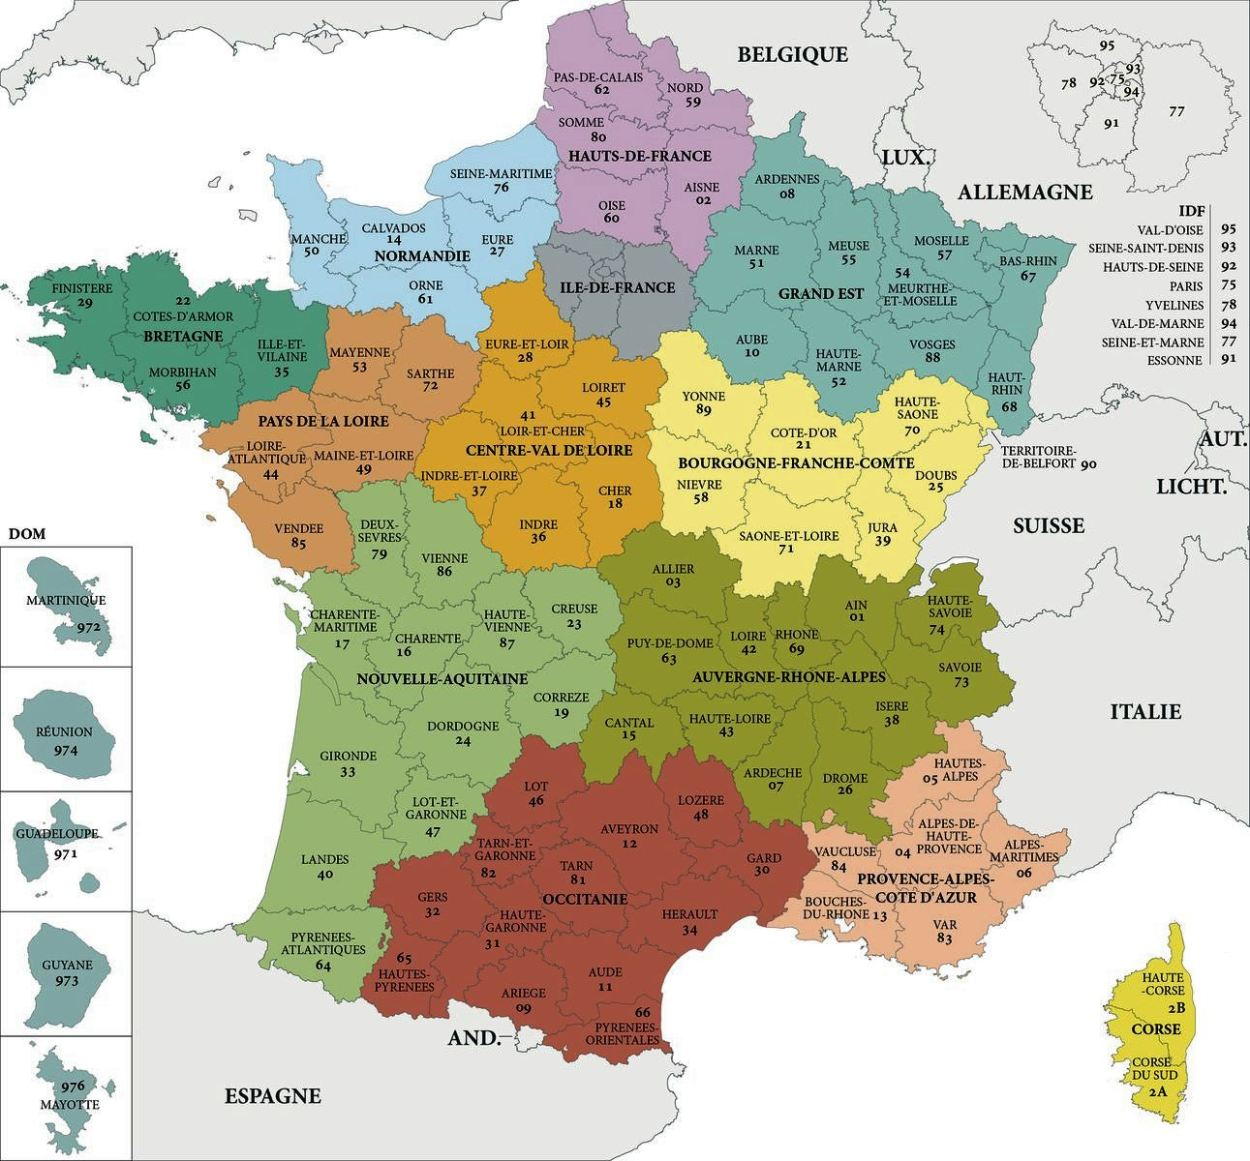 carte de france departement 71 - Les cartes de france et région